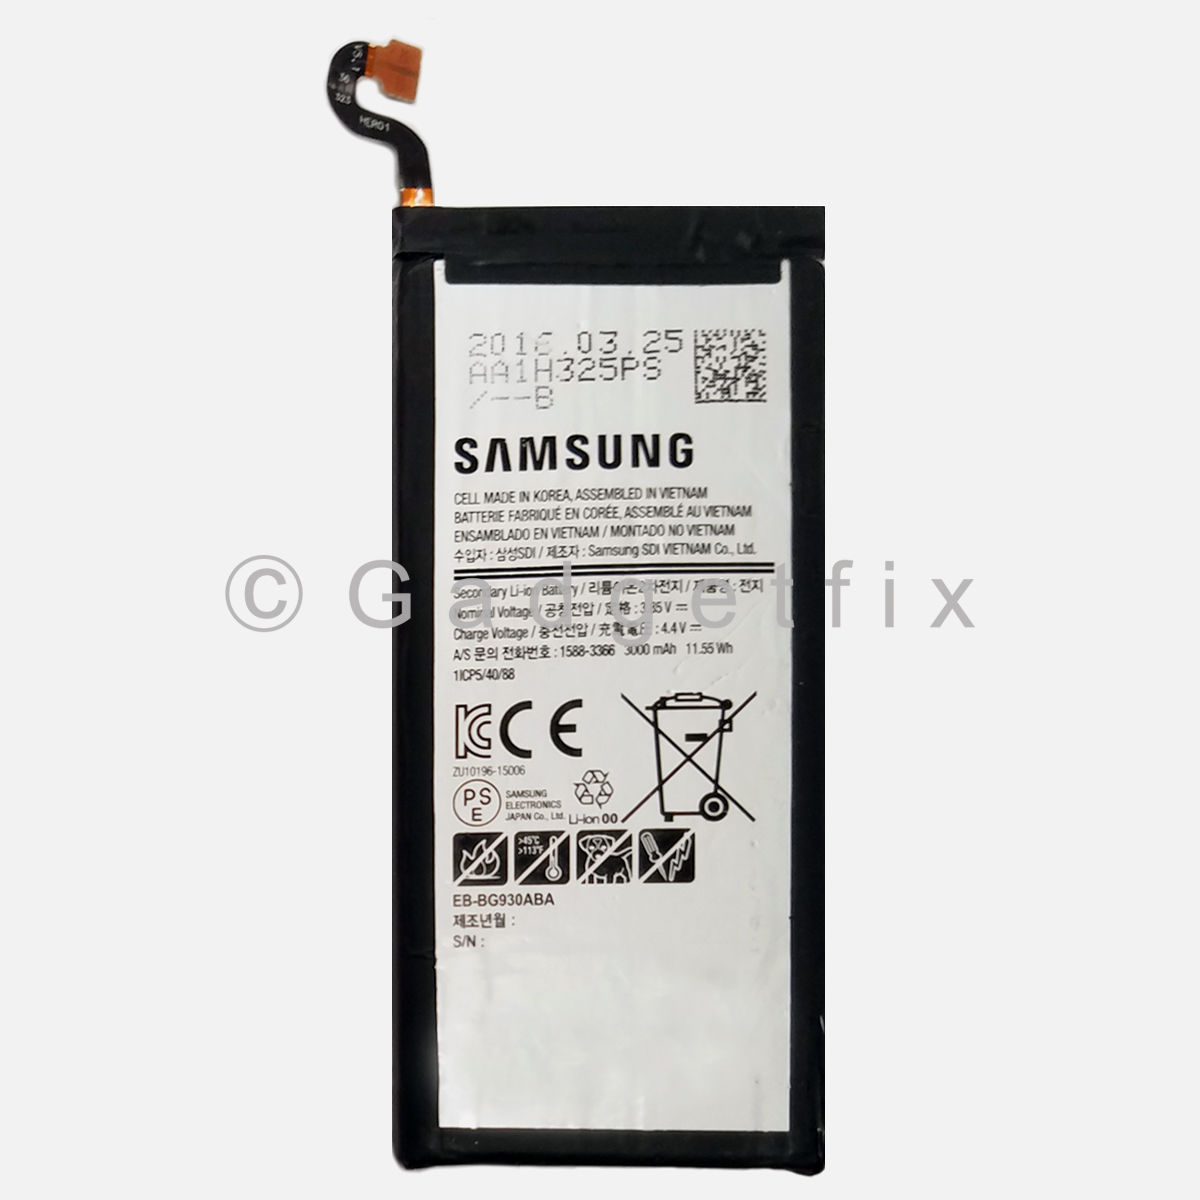 US OEM EB-BG930ABA 3000 mAh Internal Replacement Battery for Samsung Galaxy S7